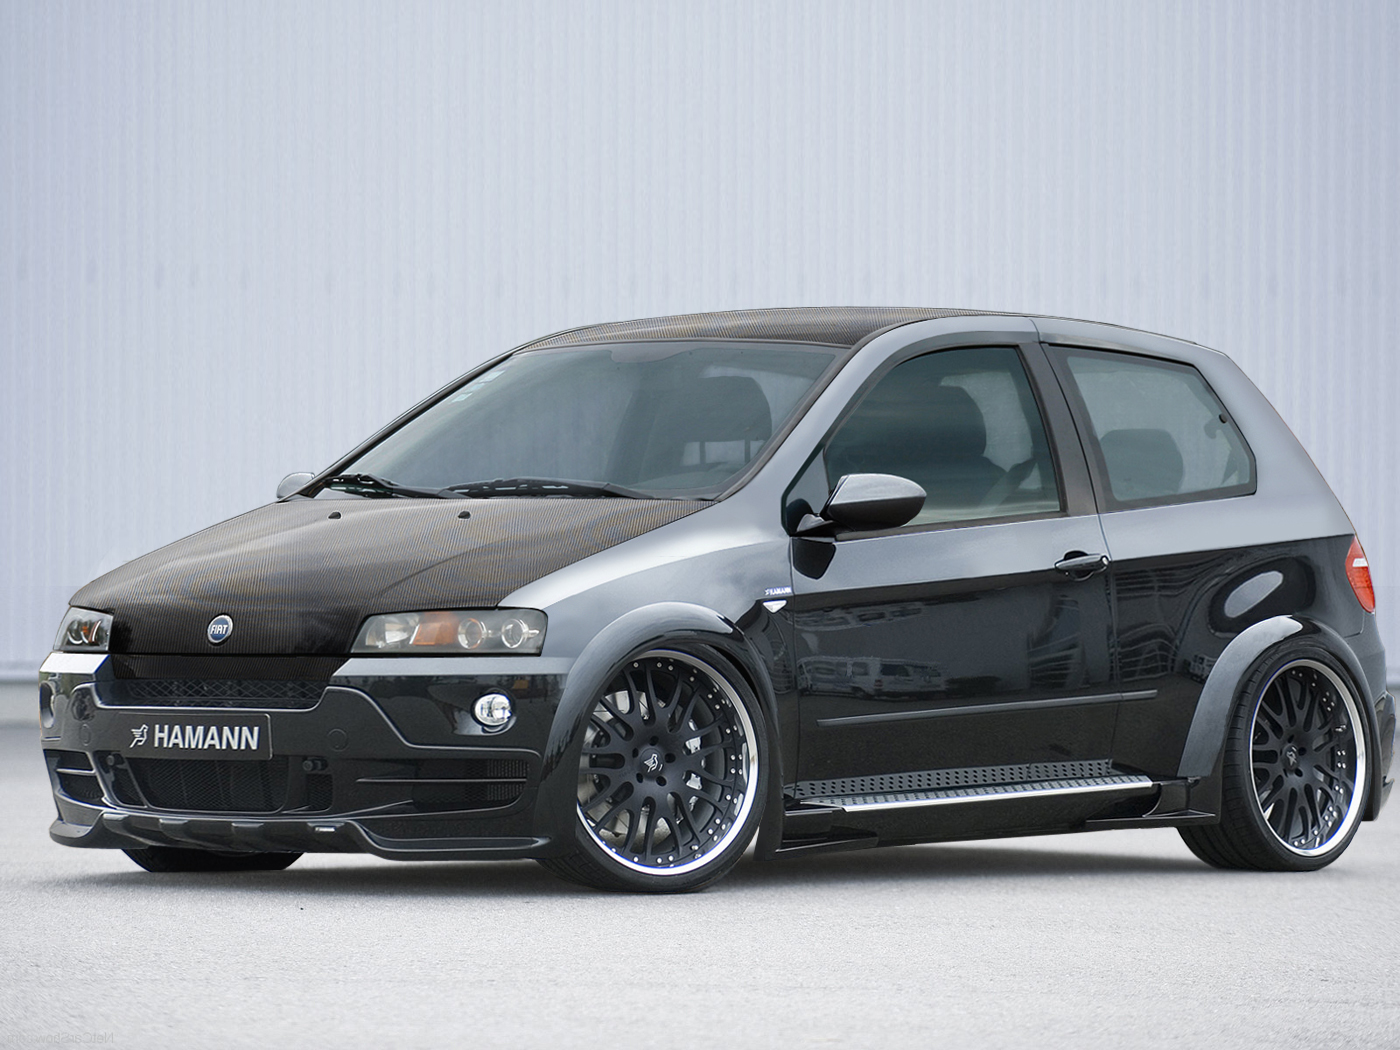 Fiat Punto MXK5 no Effects by chopperkid44